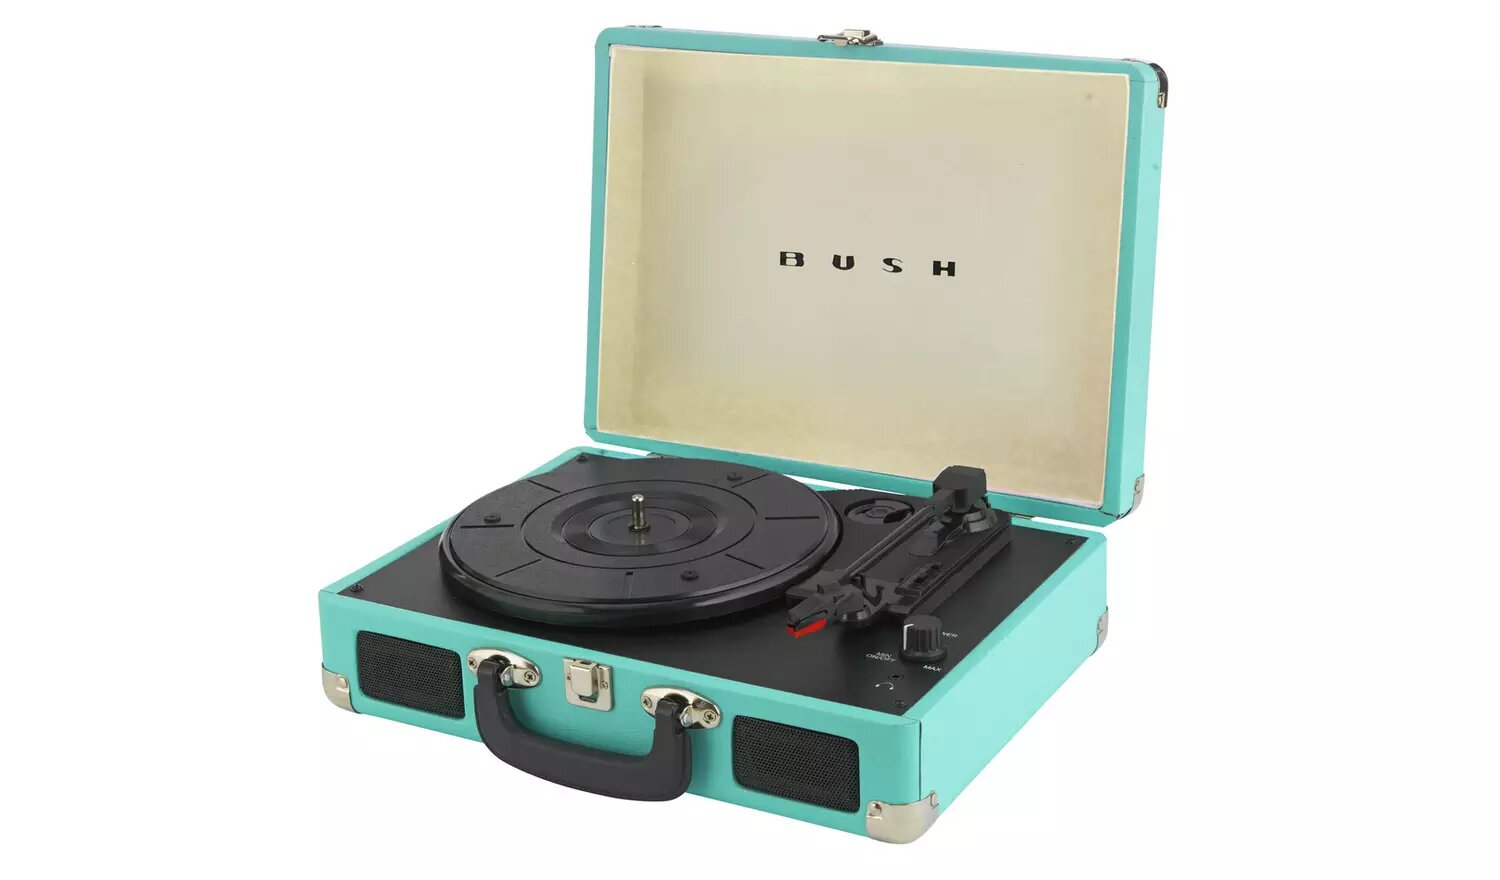 Bush Classic Retro Portable Case Record Player - Argos